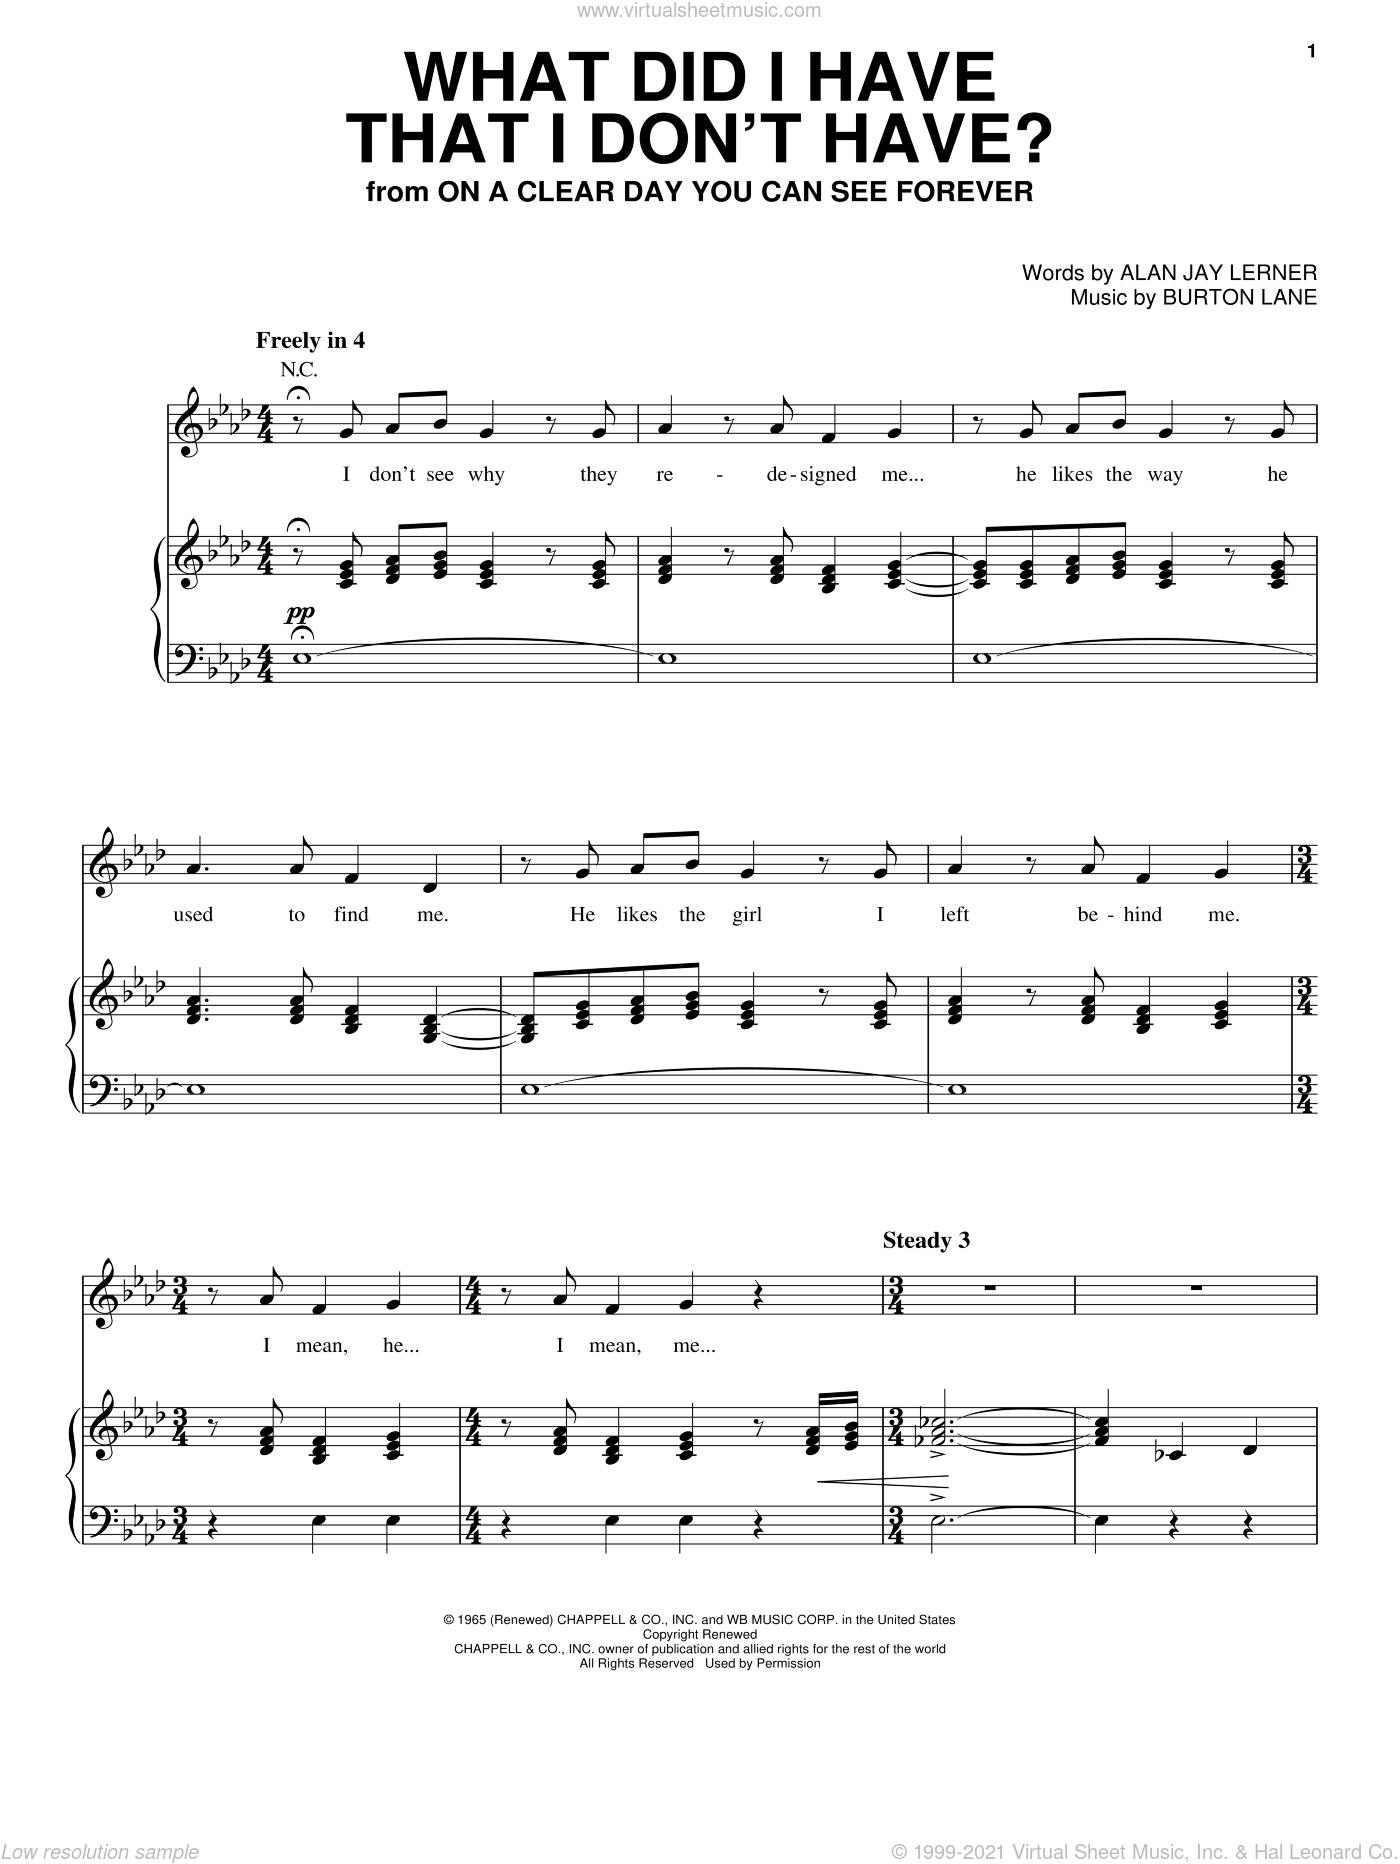 What Did I Have That I Don't Have? sheet music for voice, piano or guitar by Alan Jay Lerner and Burton Lane, intermediate voice, piano or guitar. Score Image Preview.